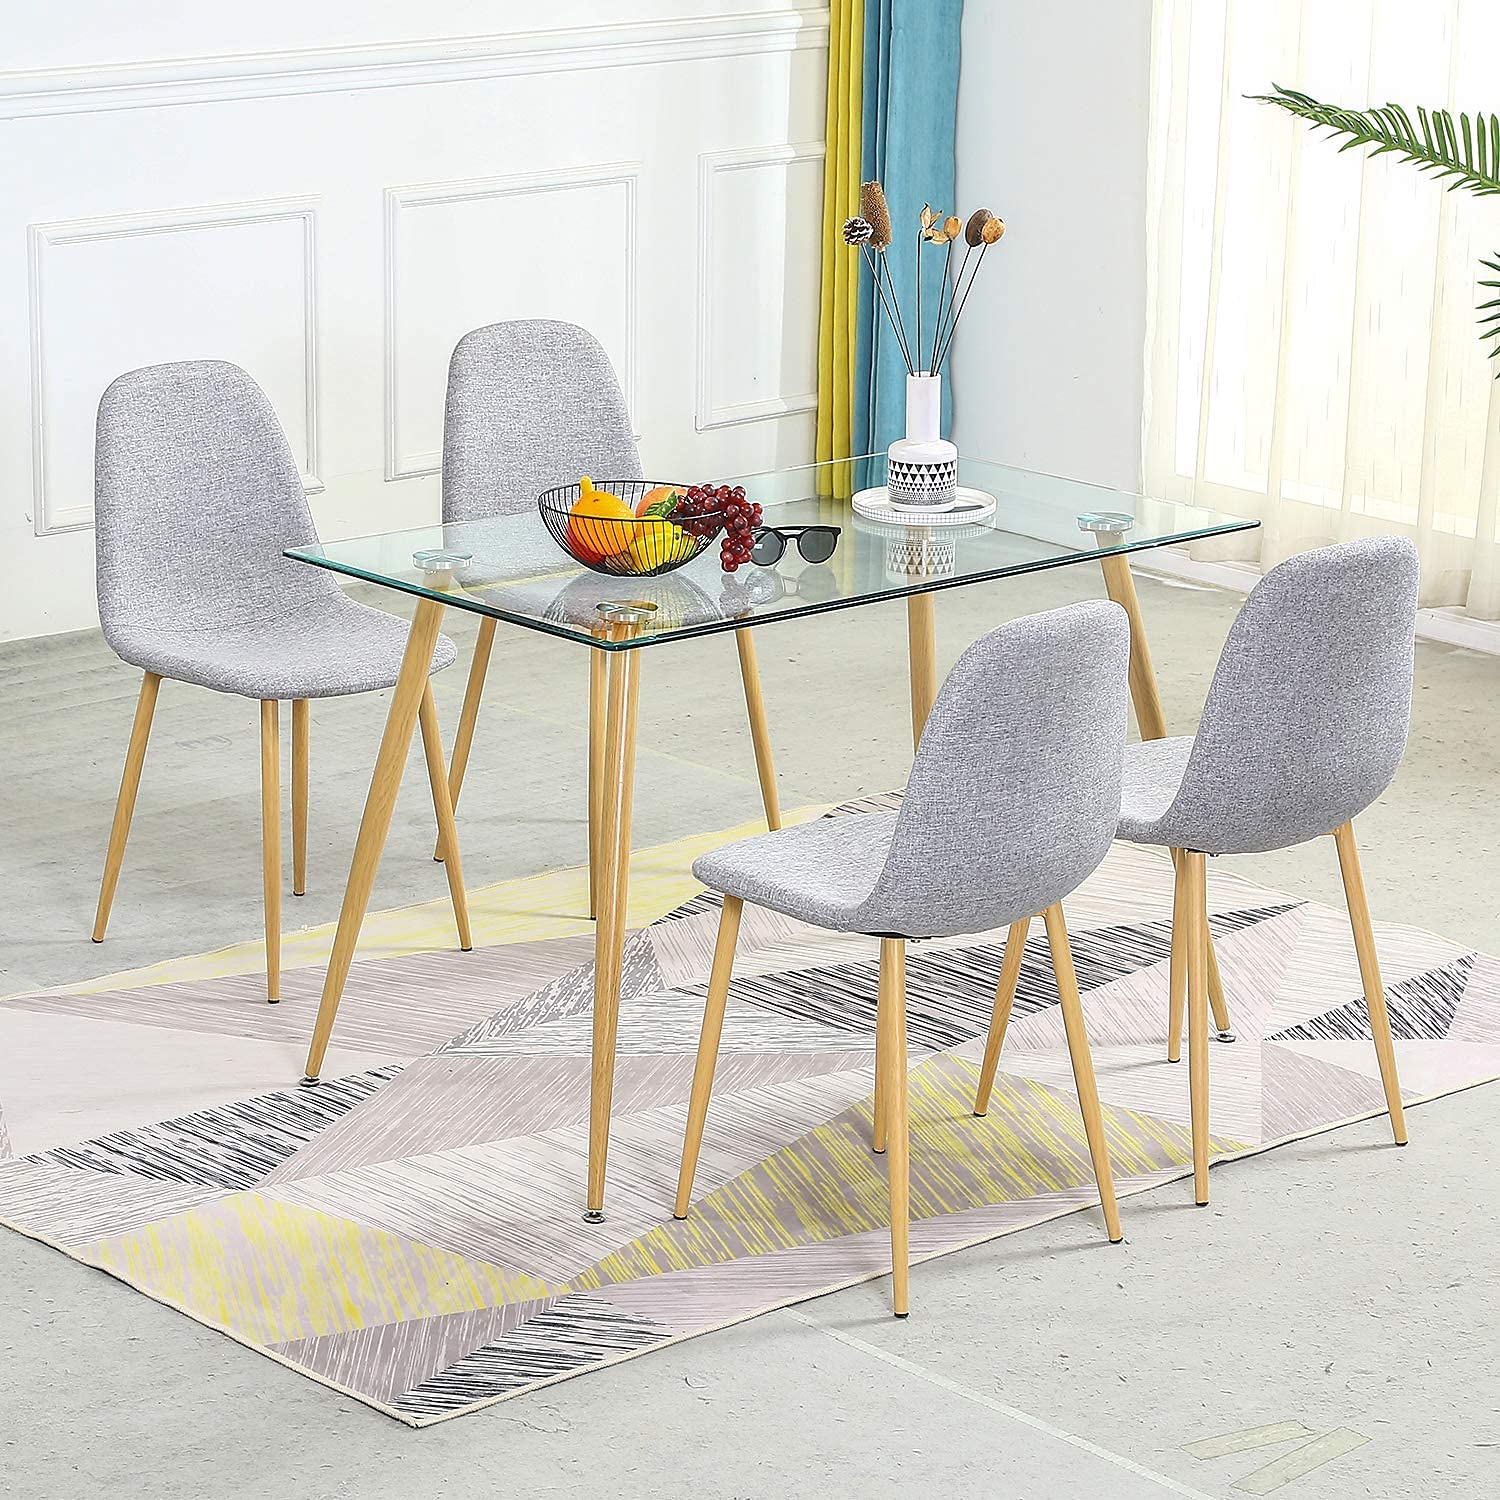 Stylifing Dining Table Set Modern, Contemporary Dining Room Sets